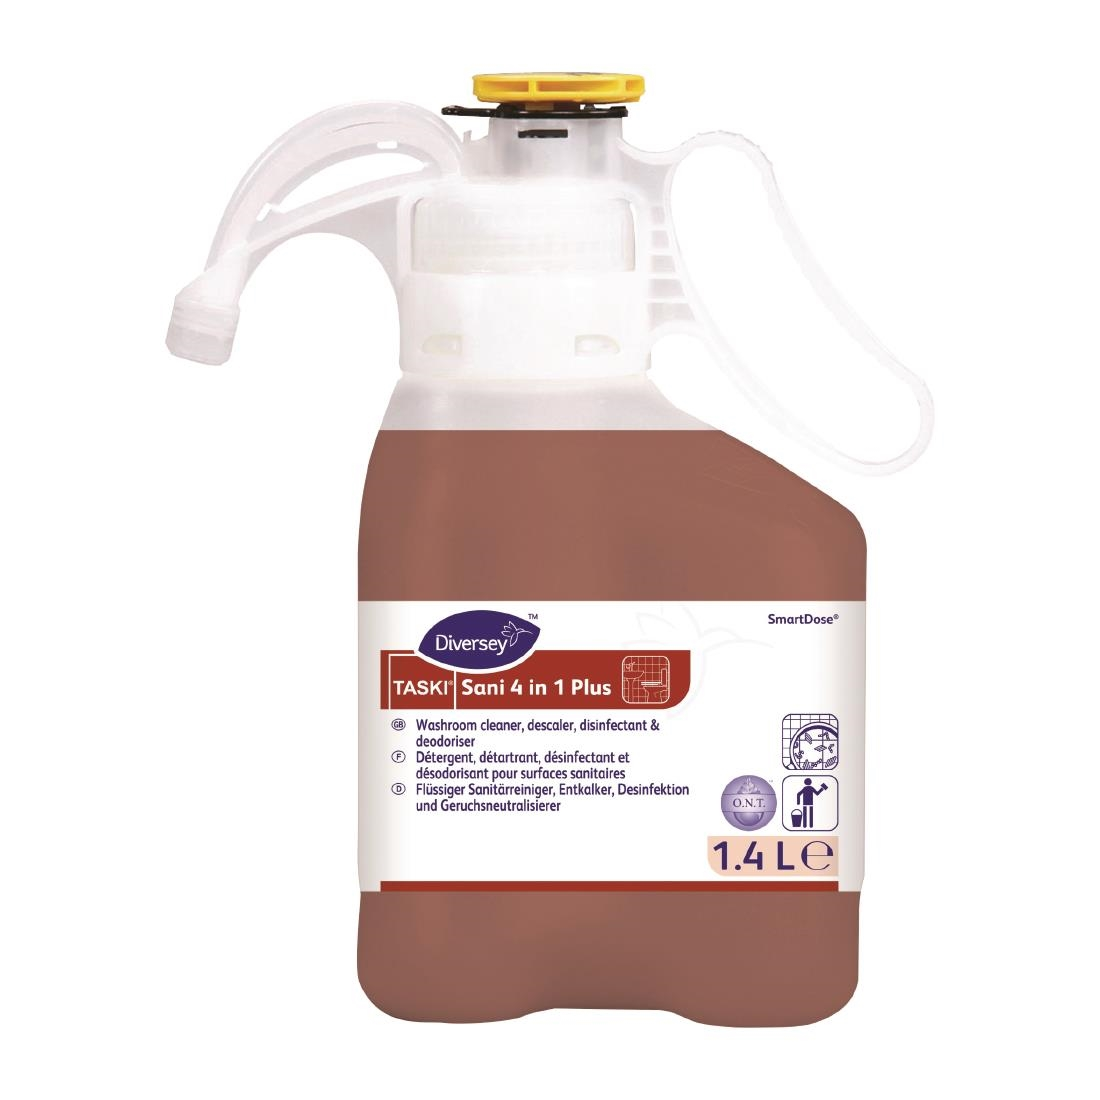 Image of Diversey TASKI Sani 4-in-1 Plus SmartDose Washroom Cleaner Super Concentrate 1.4Ltr